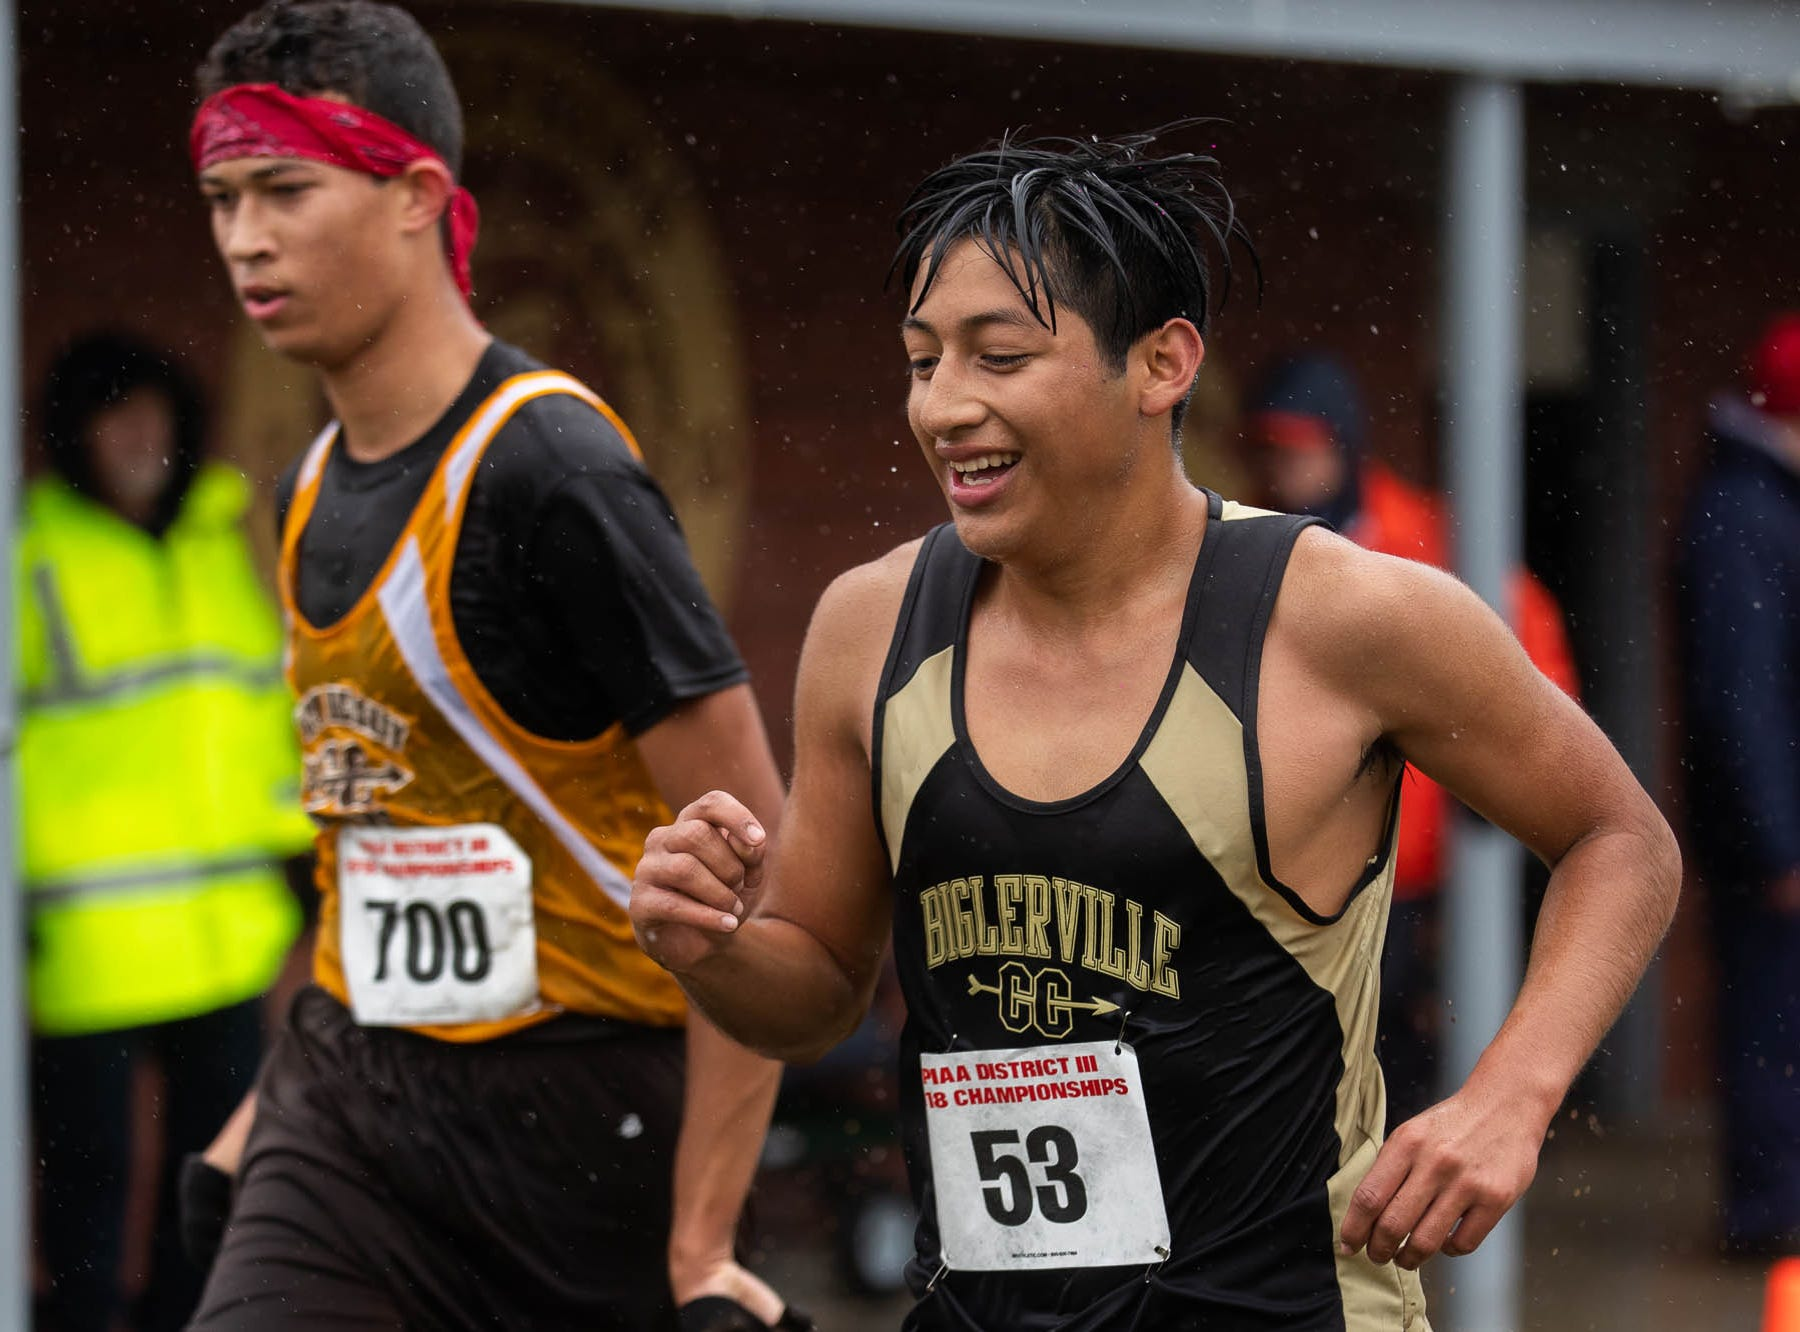 Biglerville's Isaac Sierra-Sota (53) smiles as he crosses the finishline during the PIAA District III Cross Country Championship, Saturday, Oct. 27, 2018, at Big Spring High School in Newville.